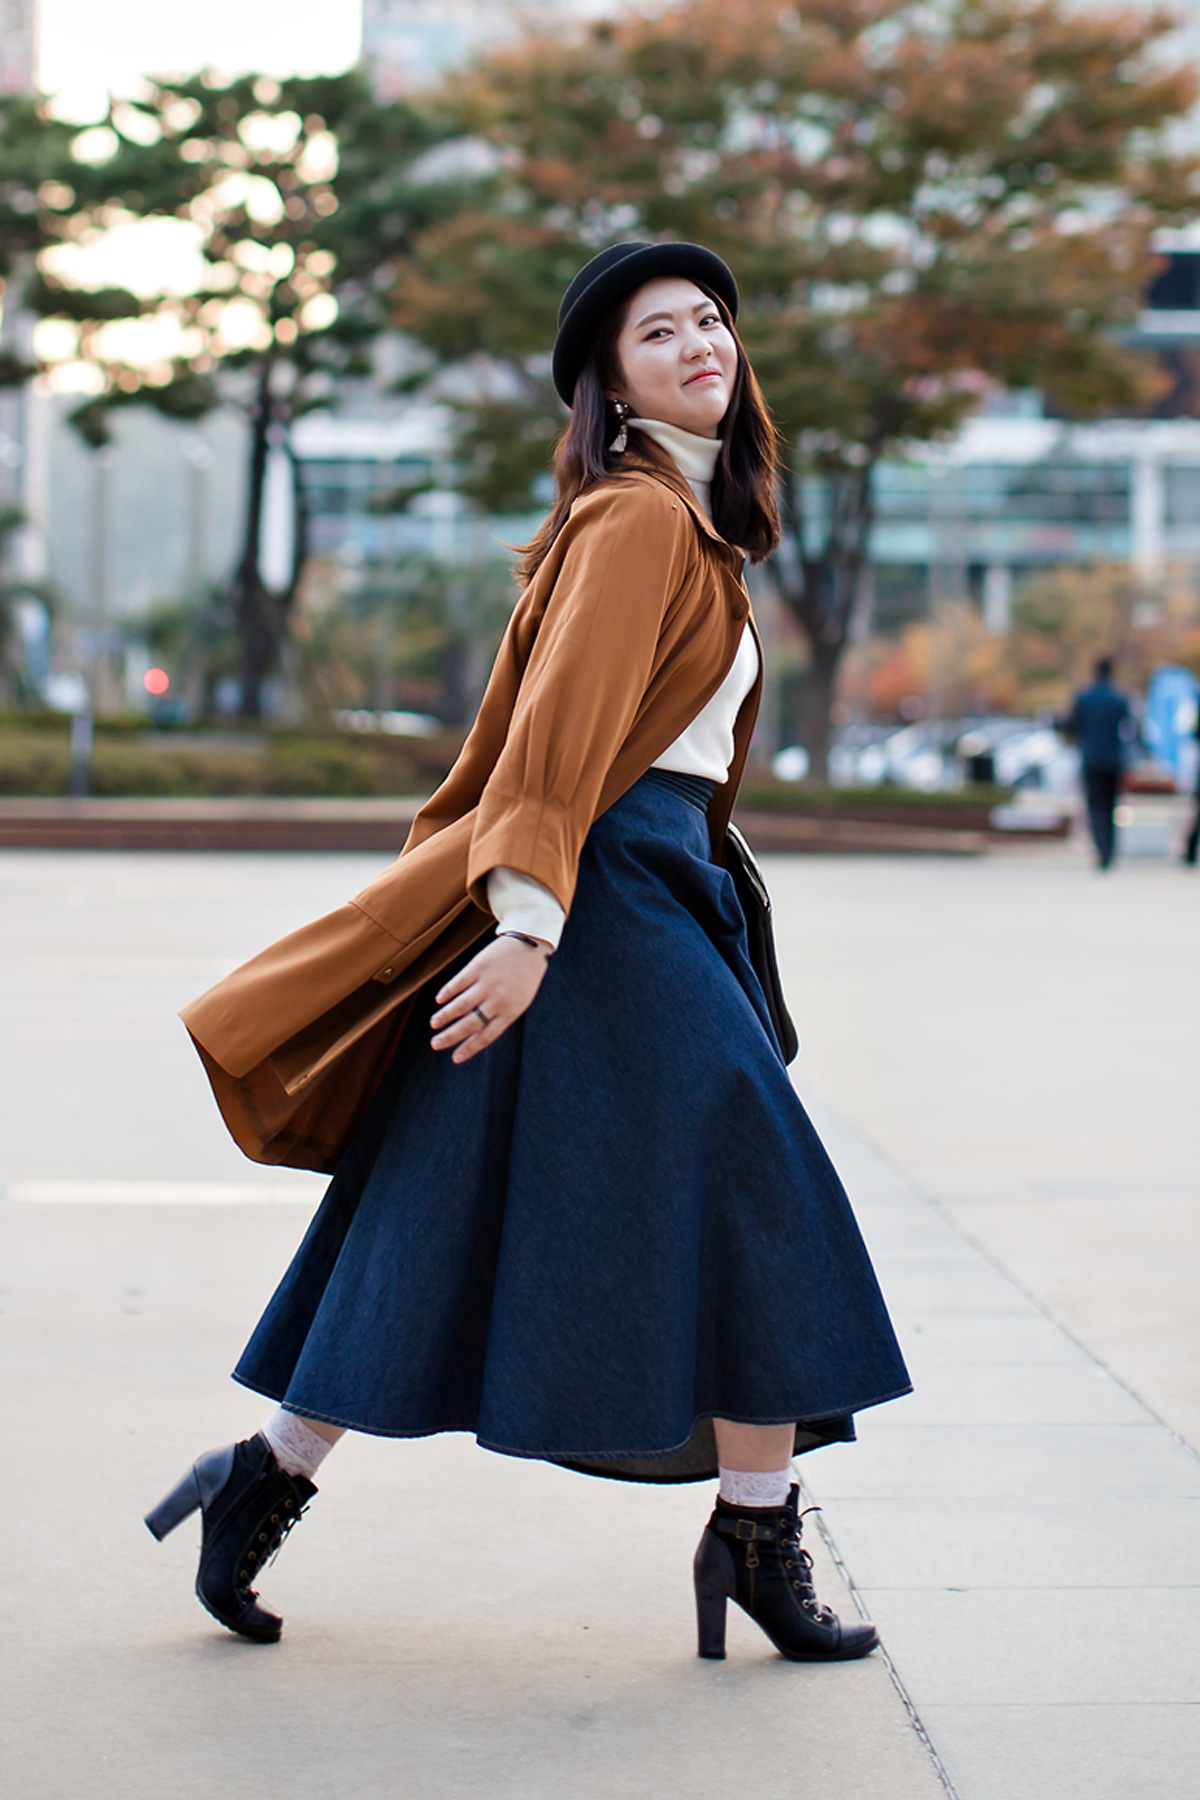 On the street… Yoon Rina Busan